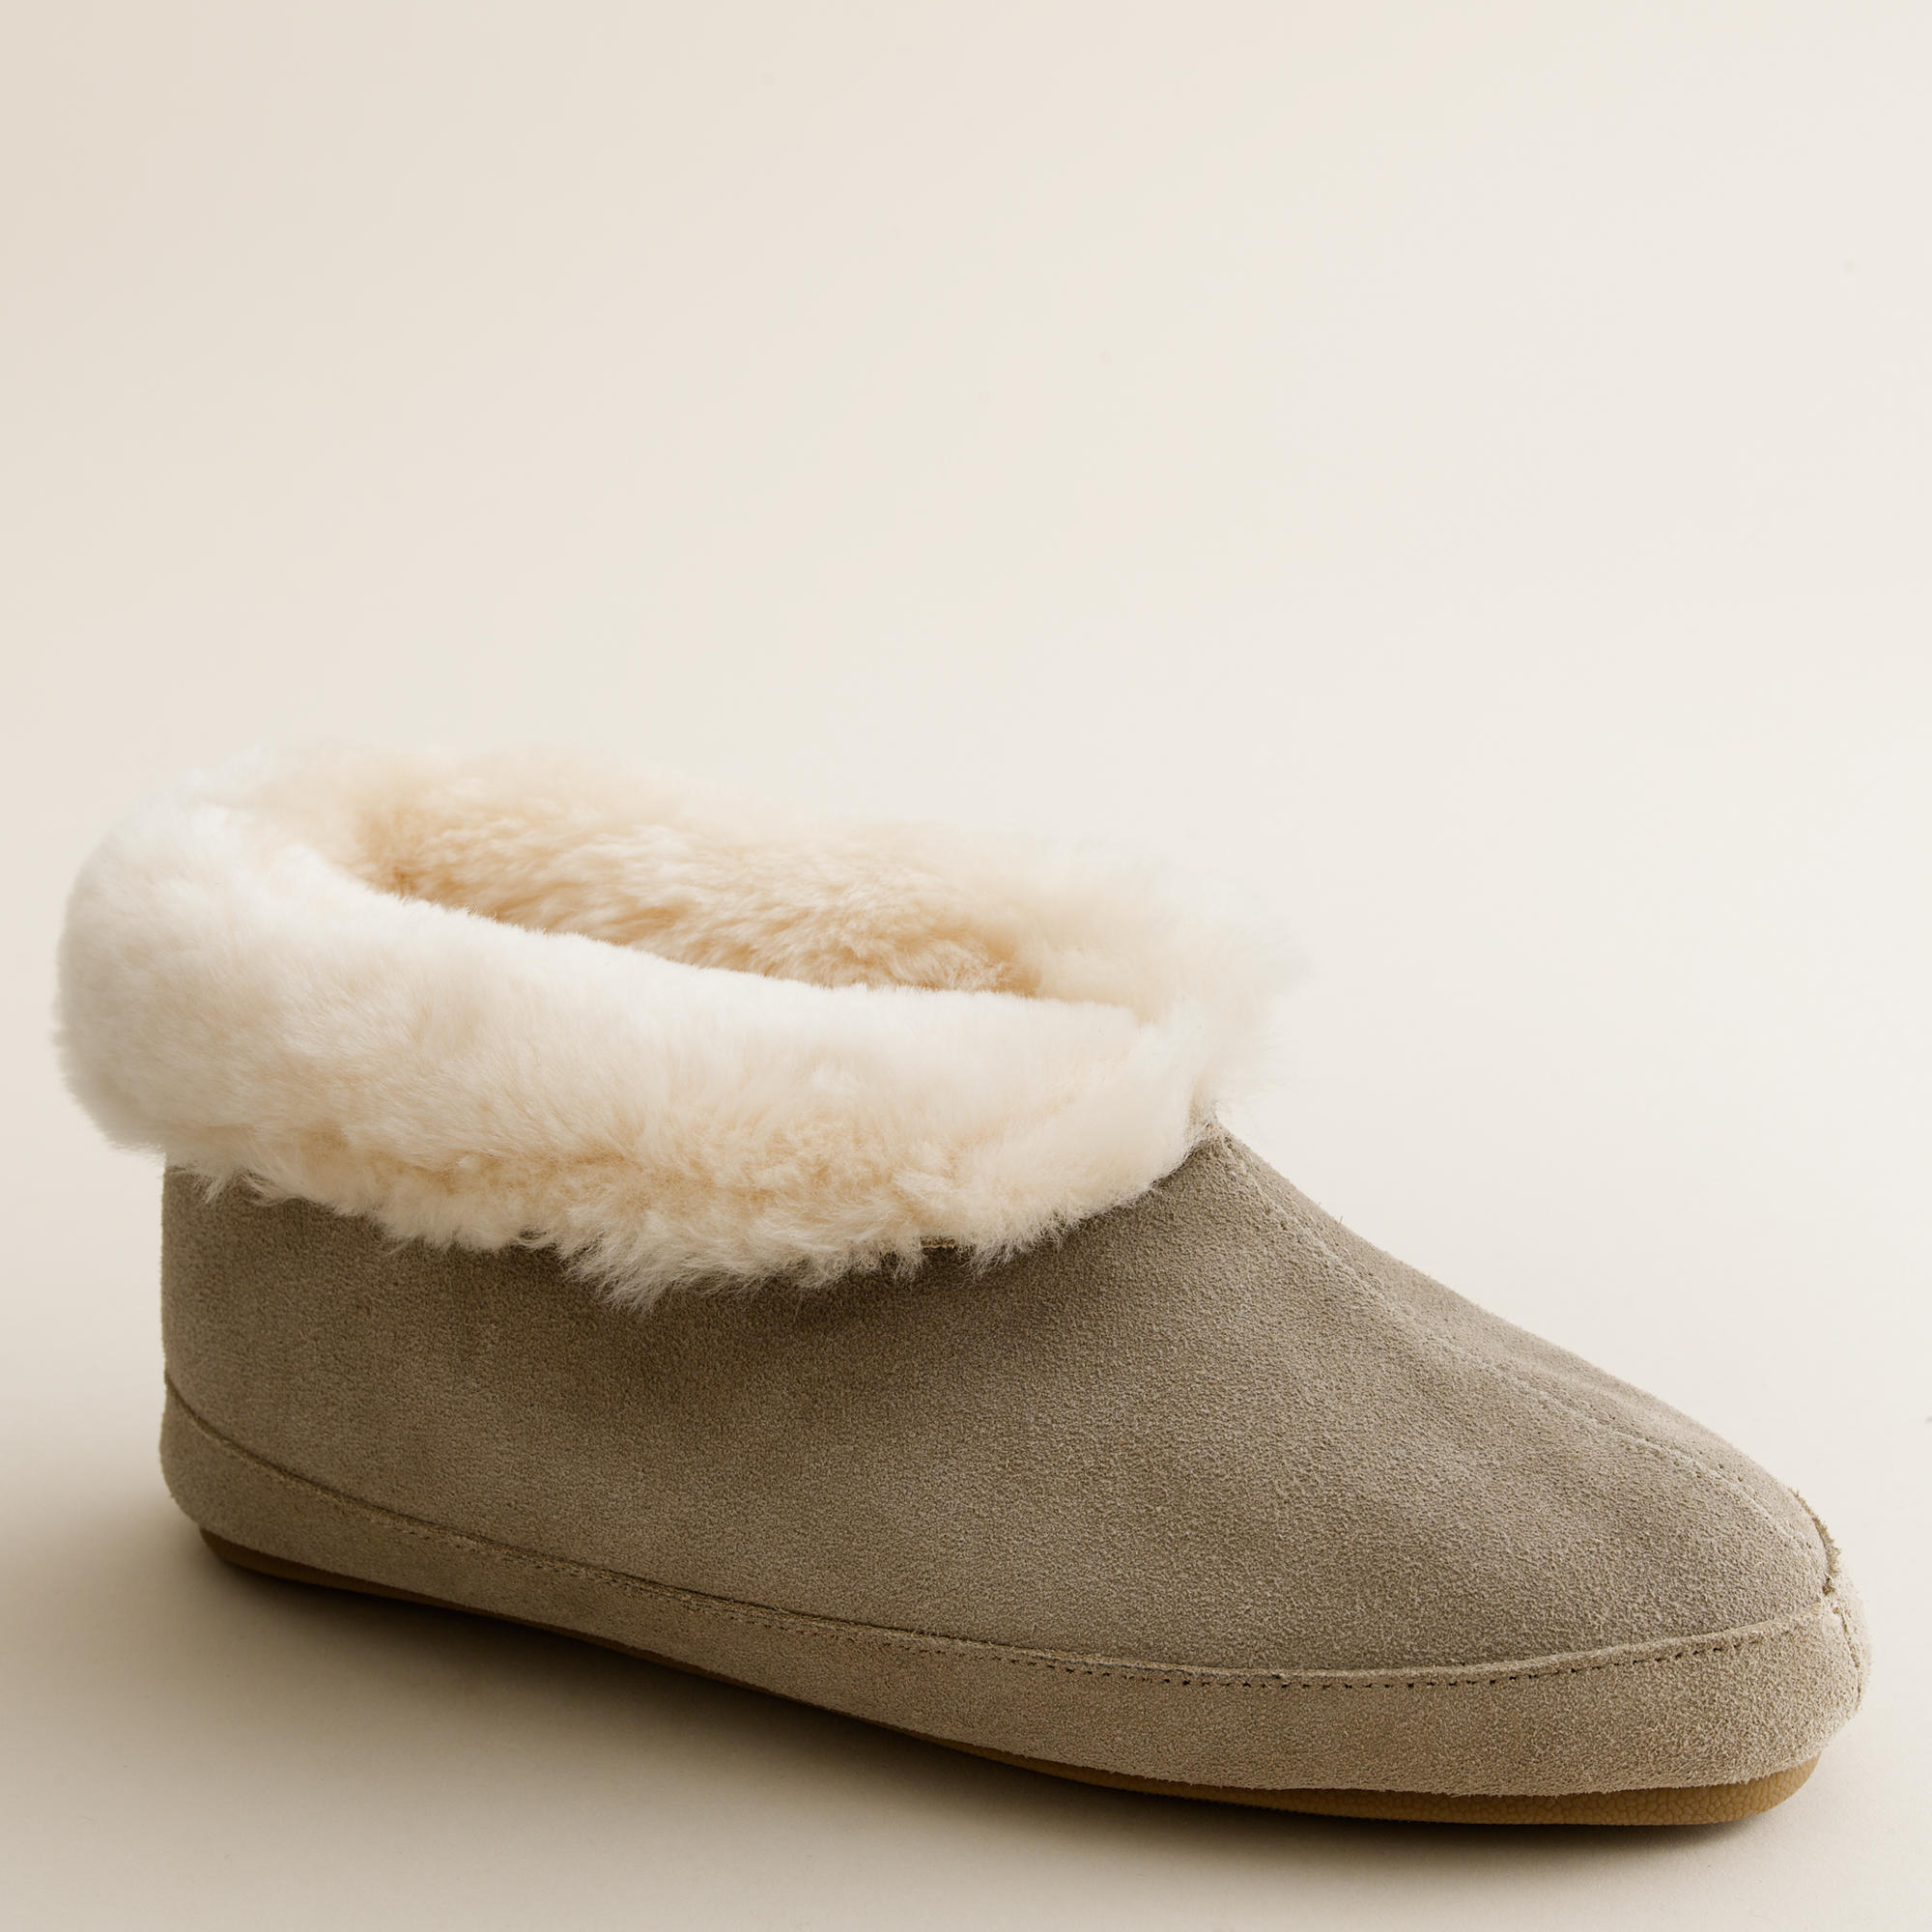 J Crew Bedroom Slippers Of Shearling Slippers J Crew